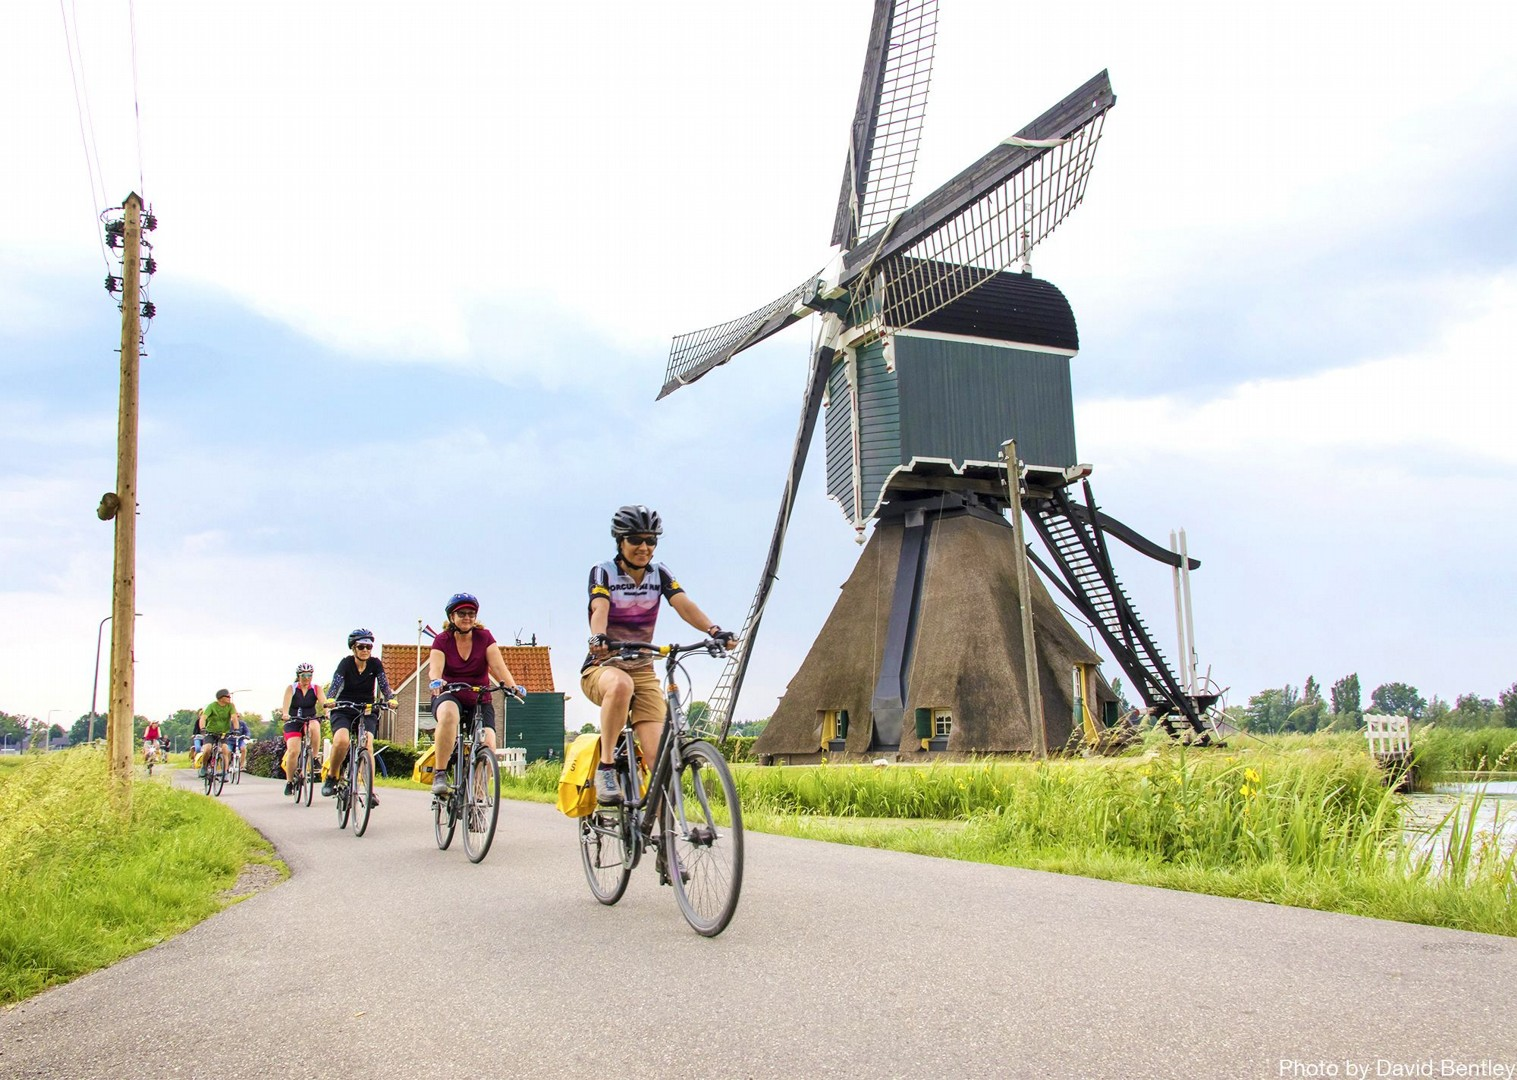 classic-holland-windmills-through-guided-cycle-tours.jpg - Holland - Windmills and Golden Beaches - Bike and Barge Holiday - Leisure Cycling